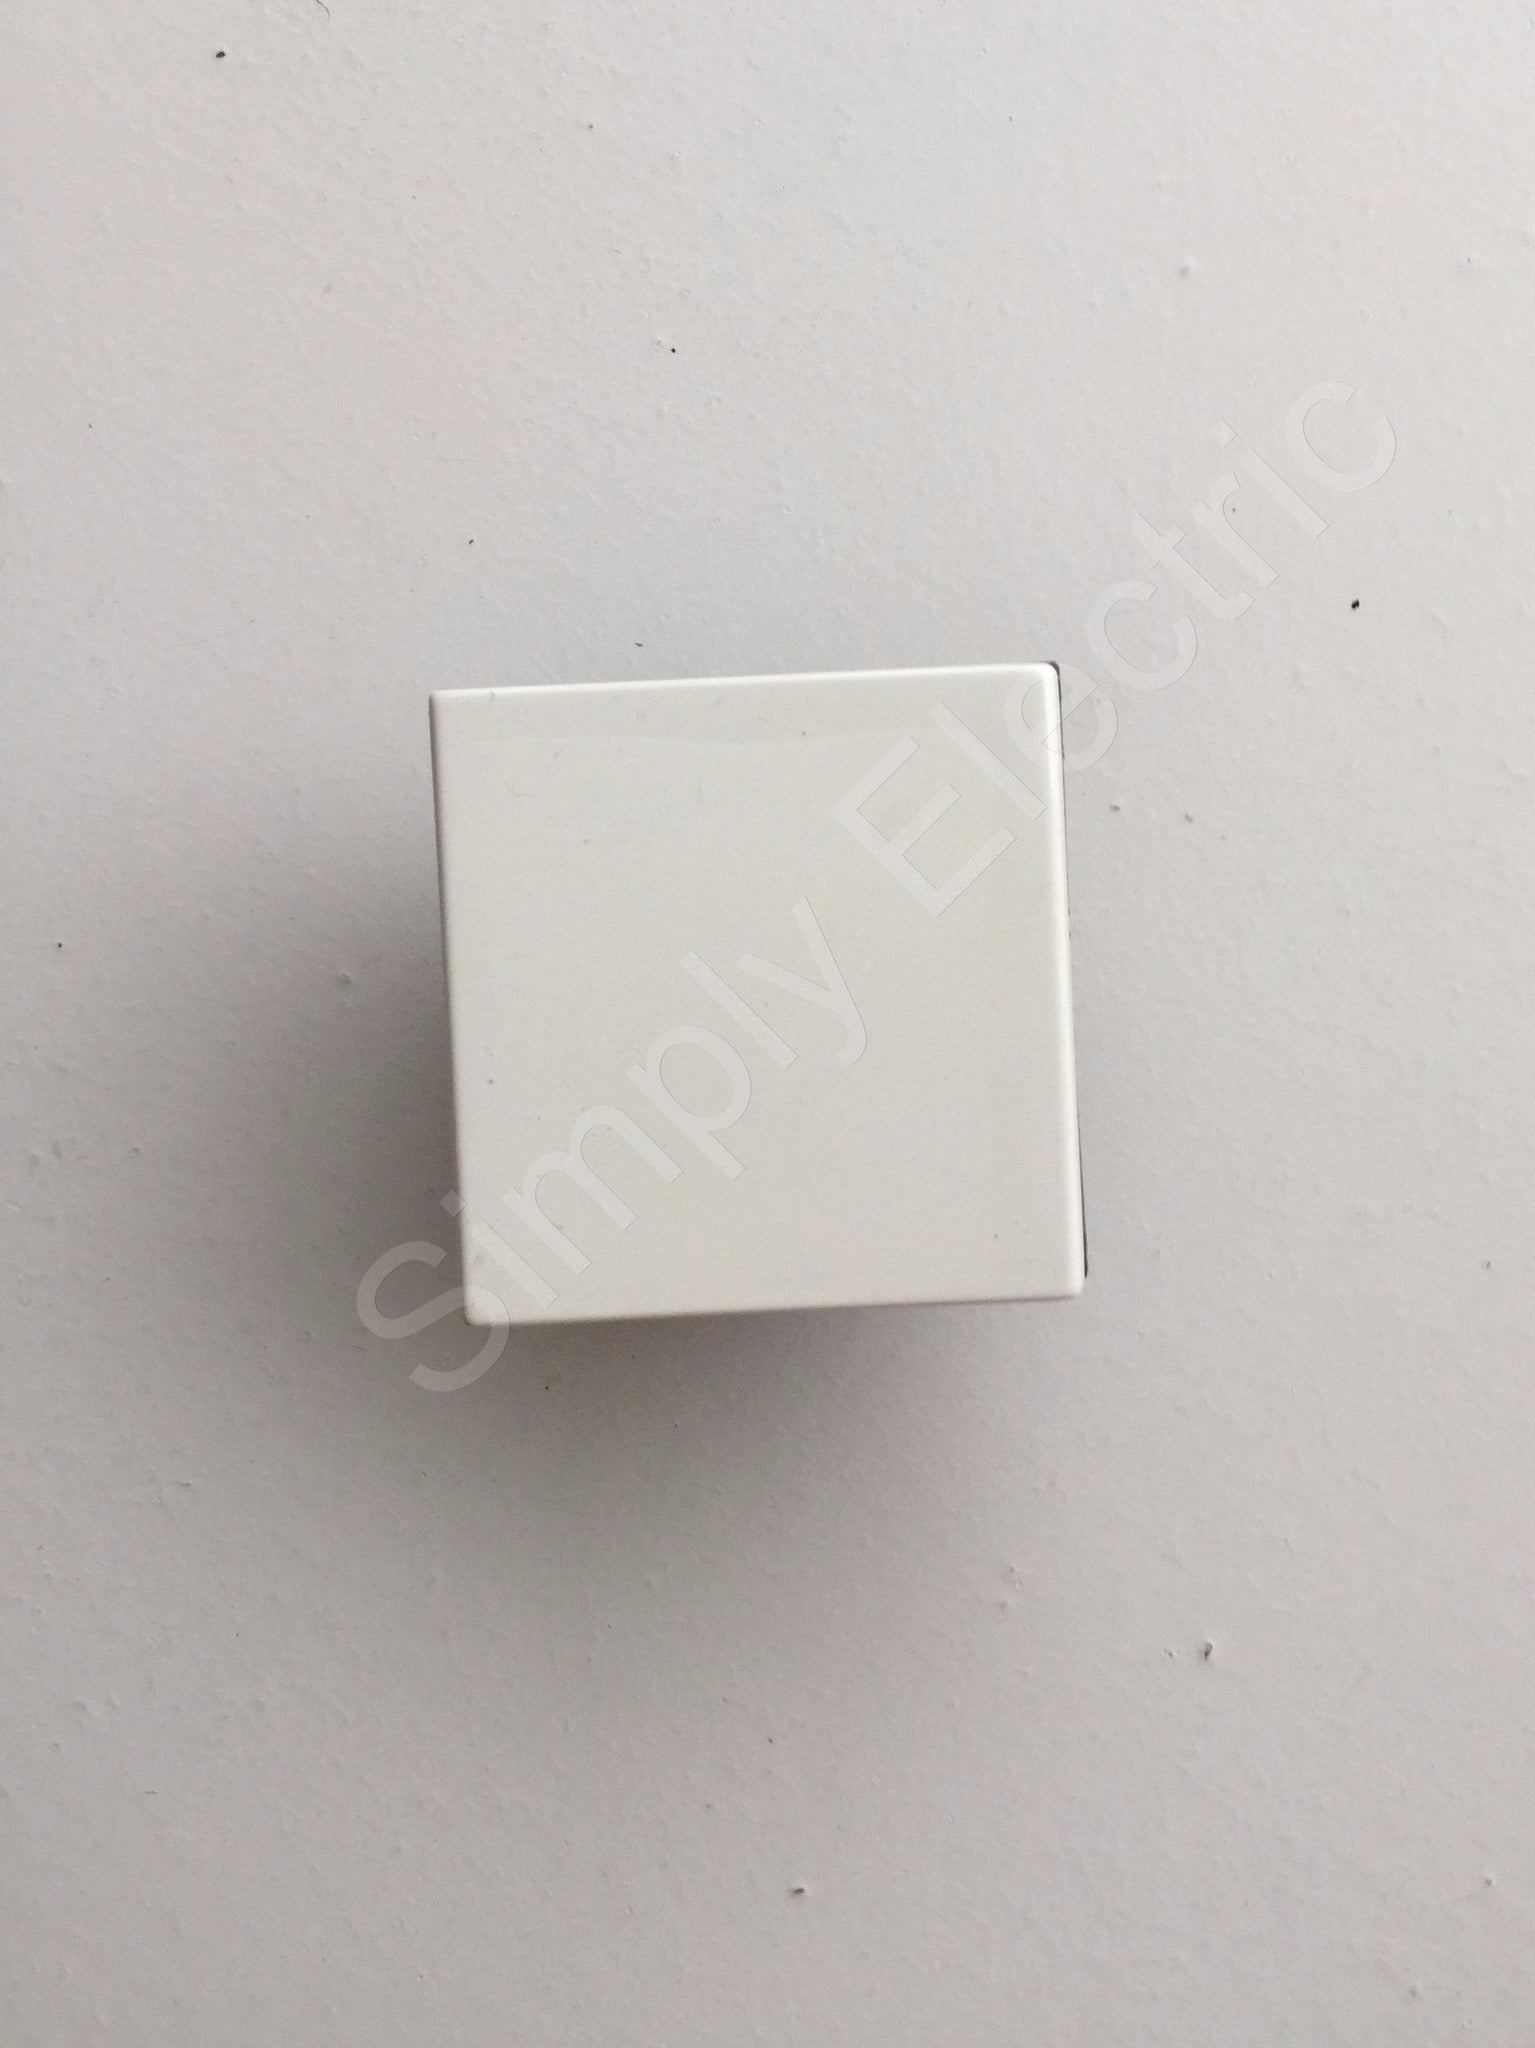 Legrand Two Way Switch 2 Module 10a 250v 572035 From 524 Unit